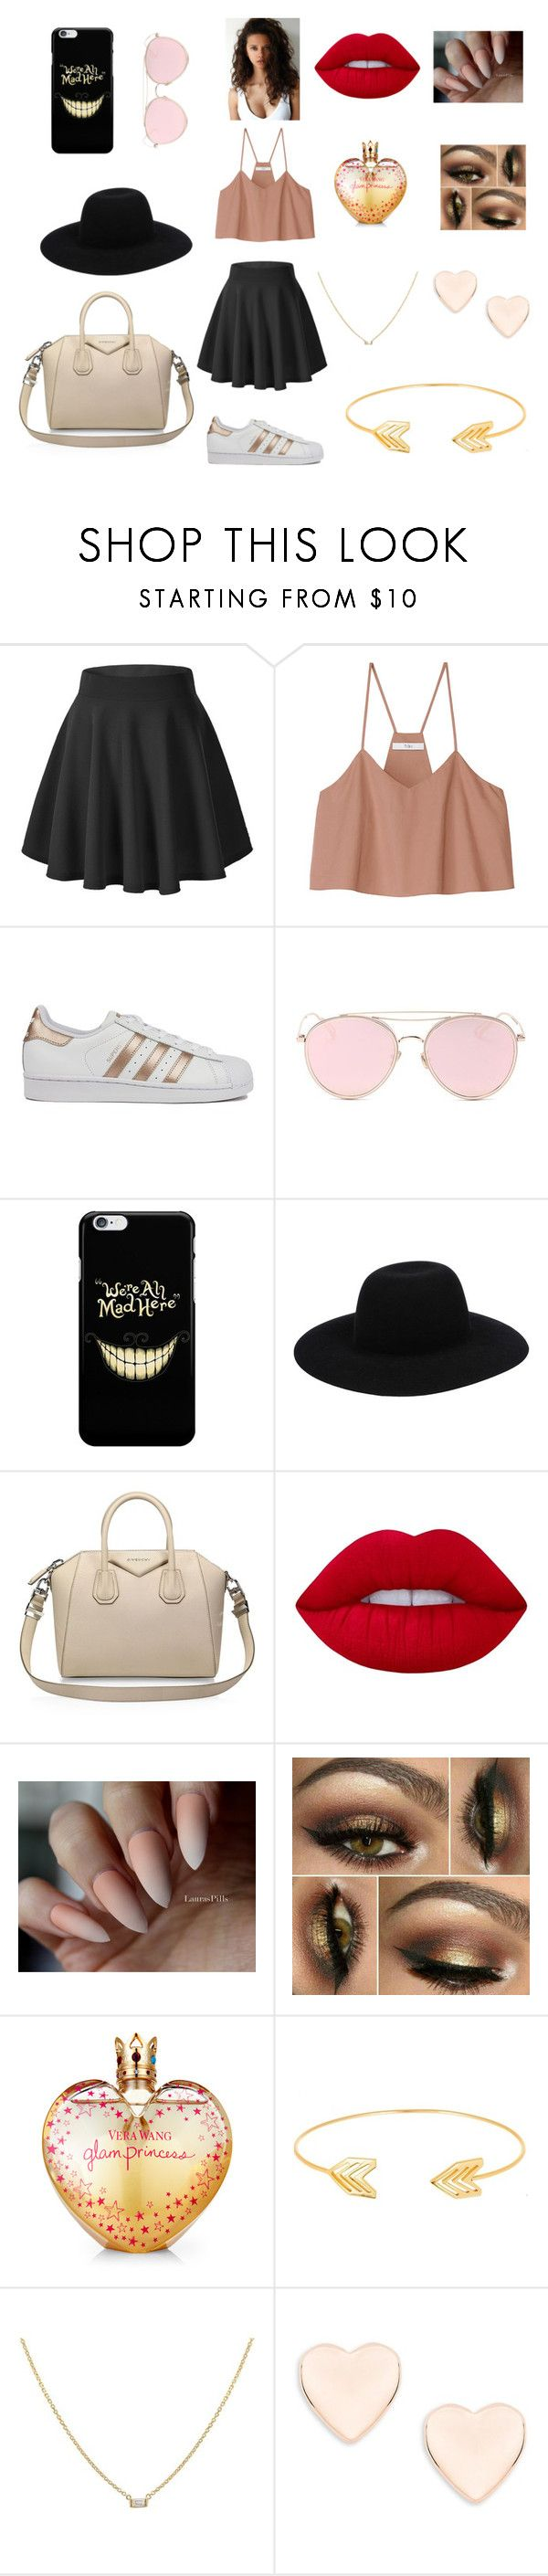 """""""tenue de sortie n°2"""" by flofloines on Polyvore featuring TIBI, adidas, LMNT, Off-White, Givenchy, Lime Crime, Vera Wang, Lord & Taylor et Ted Baker"""